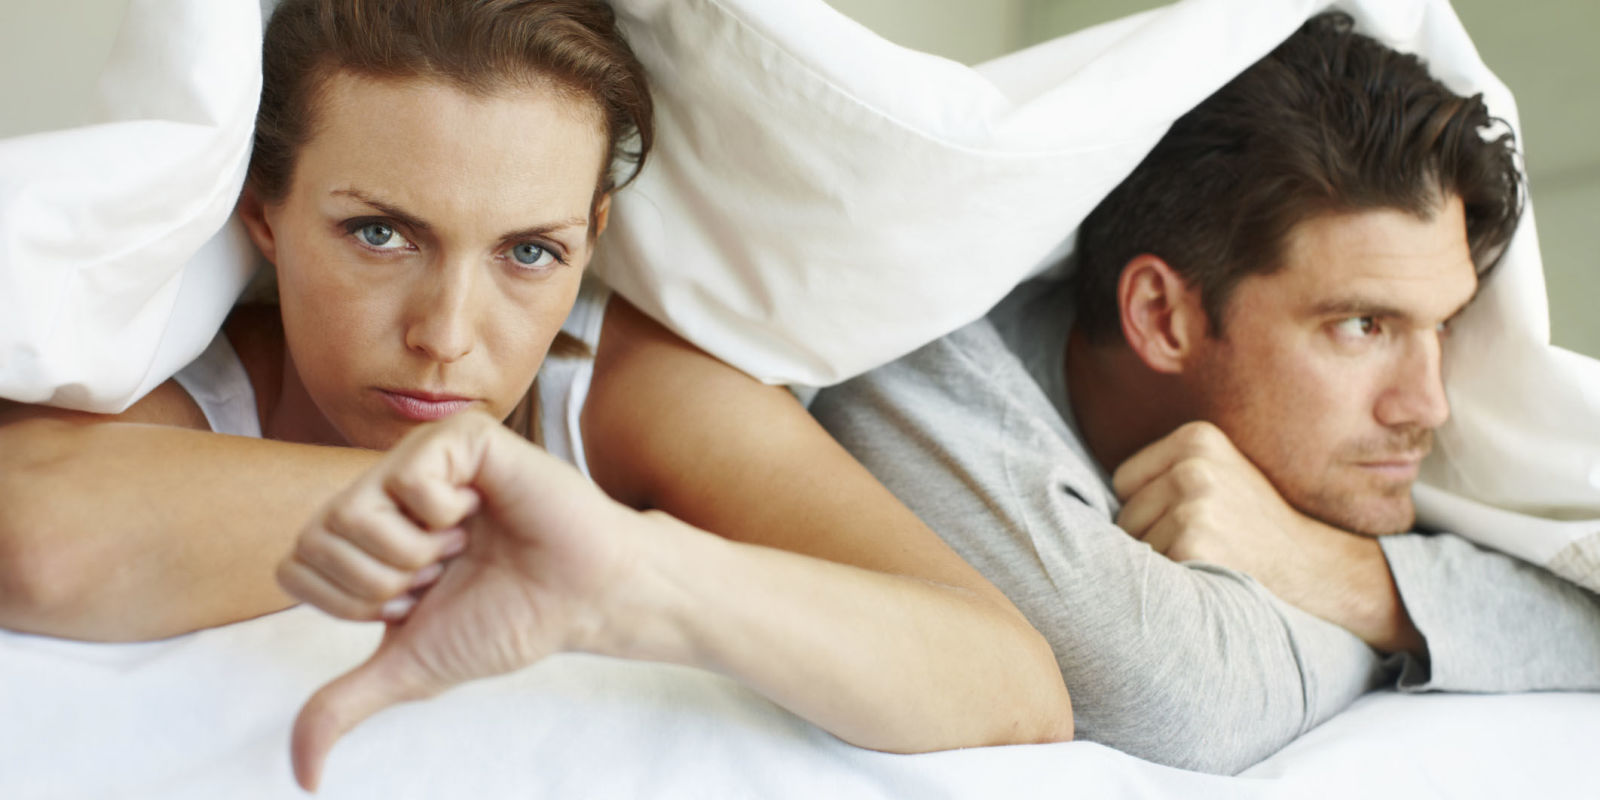 Habit harm relationship sex that